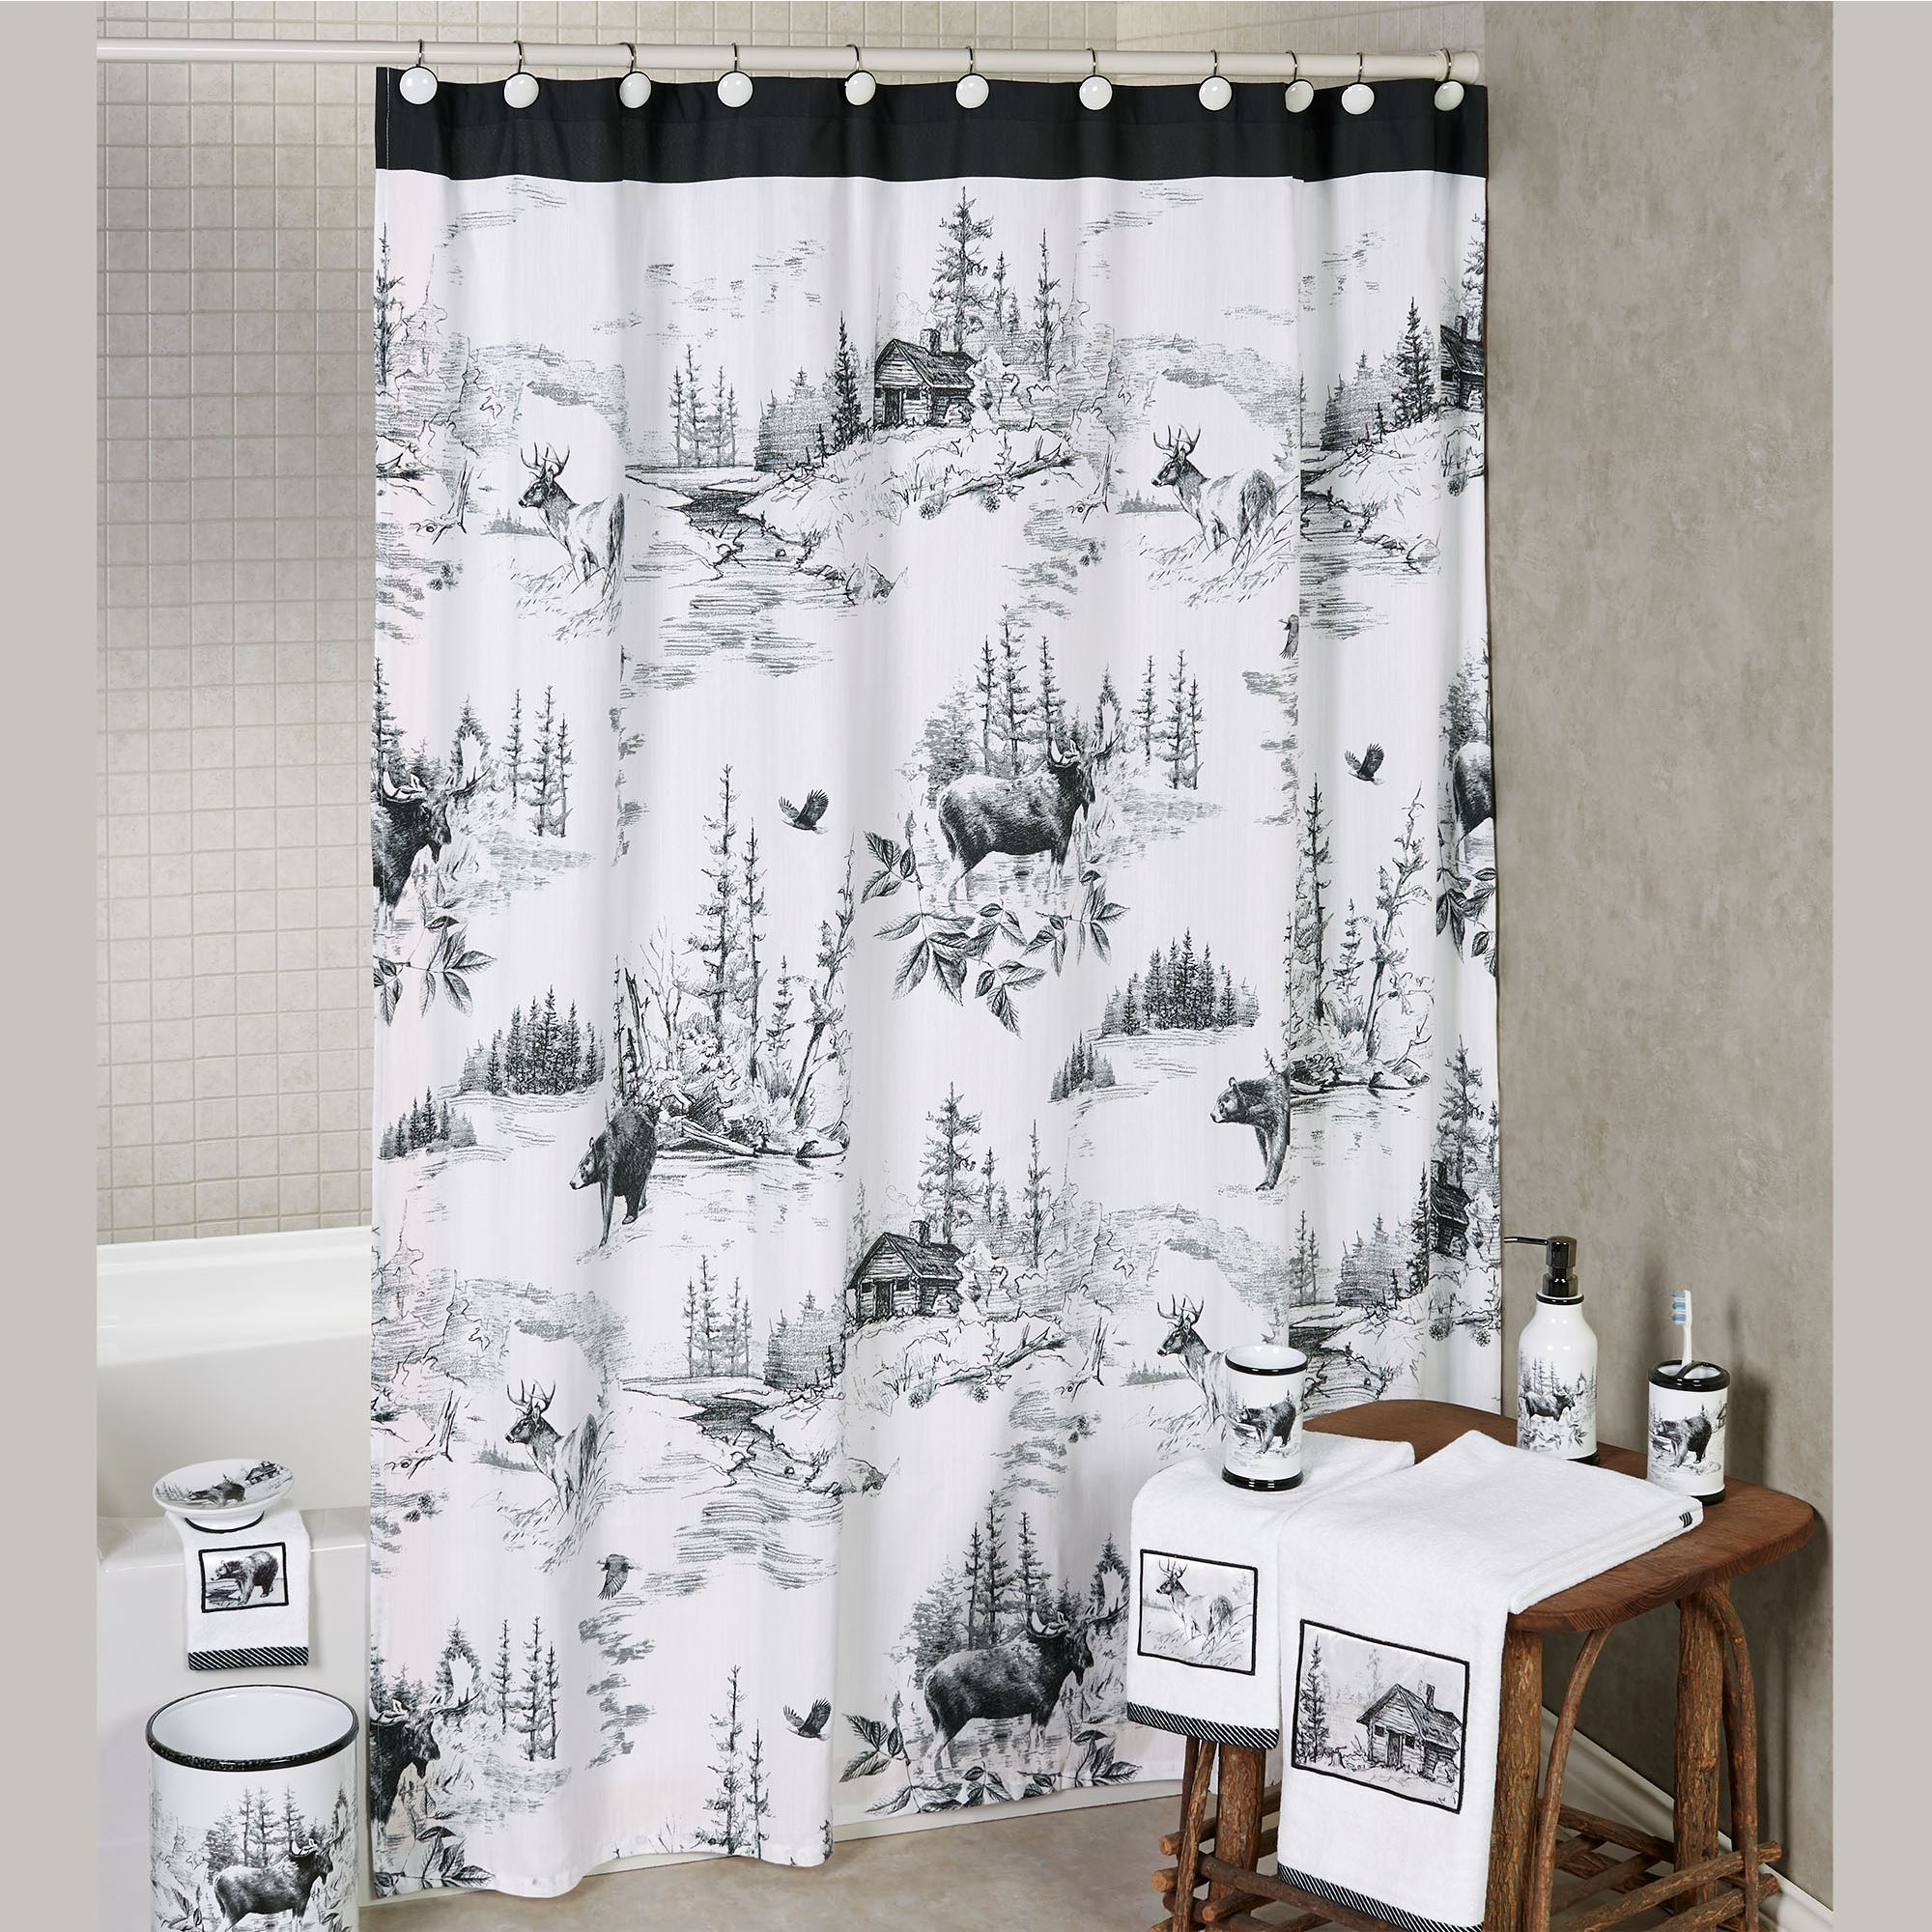 Sketches Rustic Cabin Wildlife Shower Curtain By Hautman